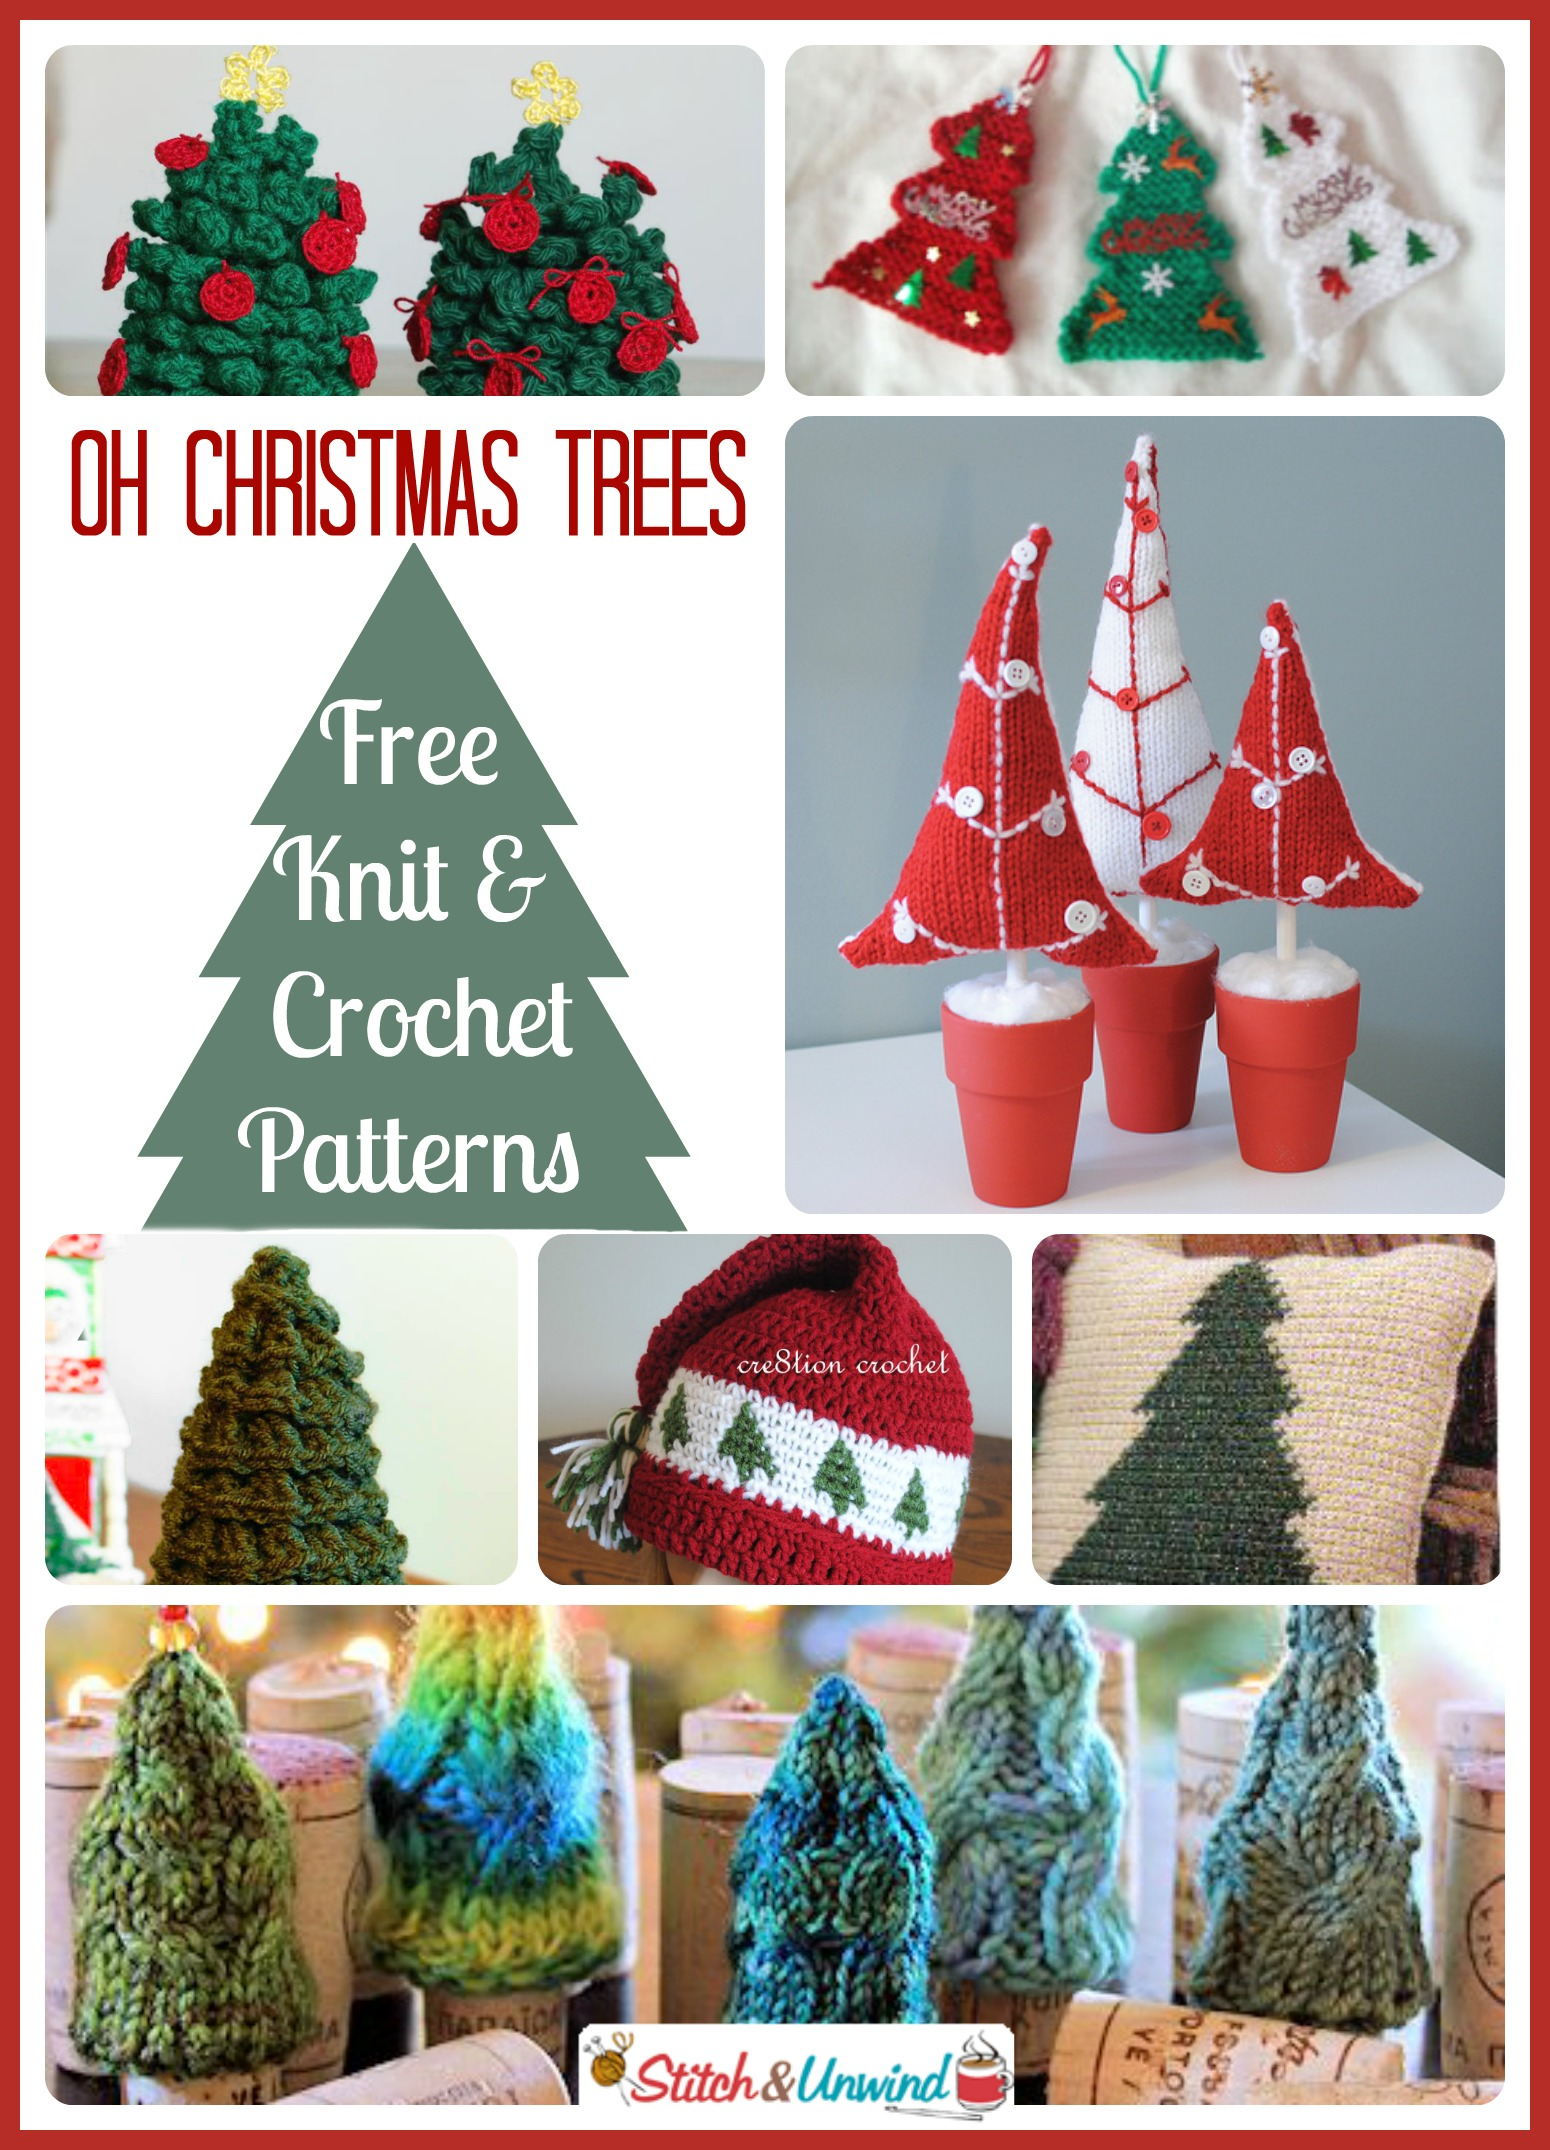 Oh Christmas Trees: Lovely Knit & Crochet Patterns - Stitch and Unwind